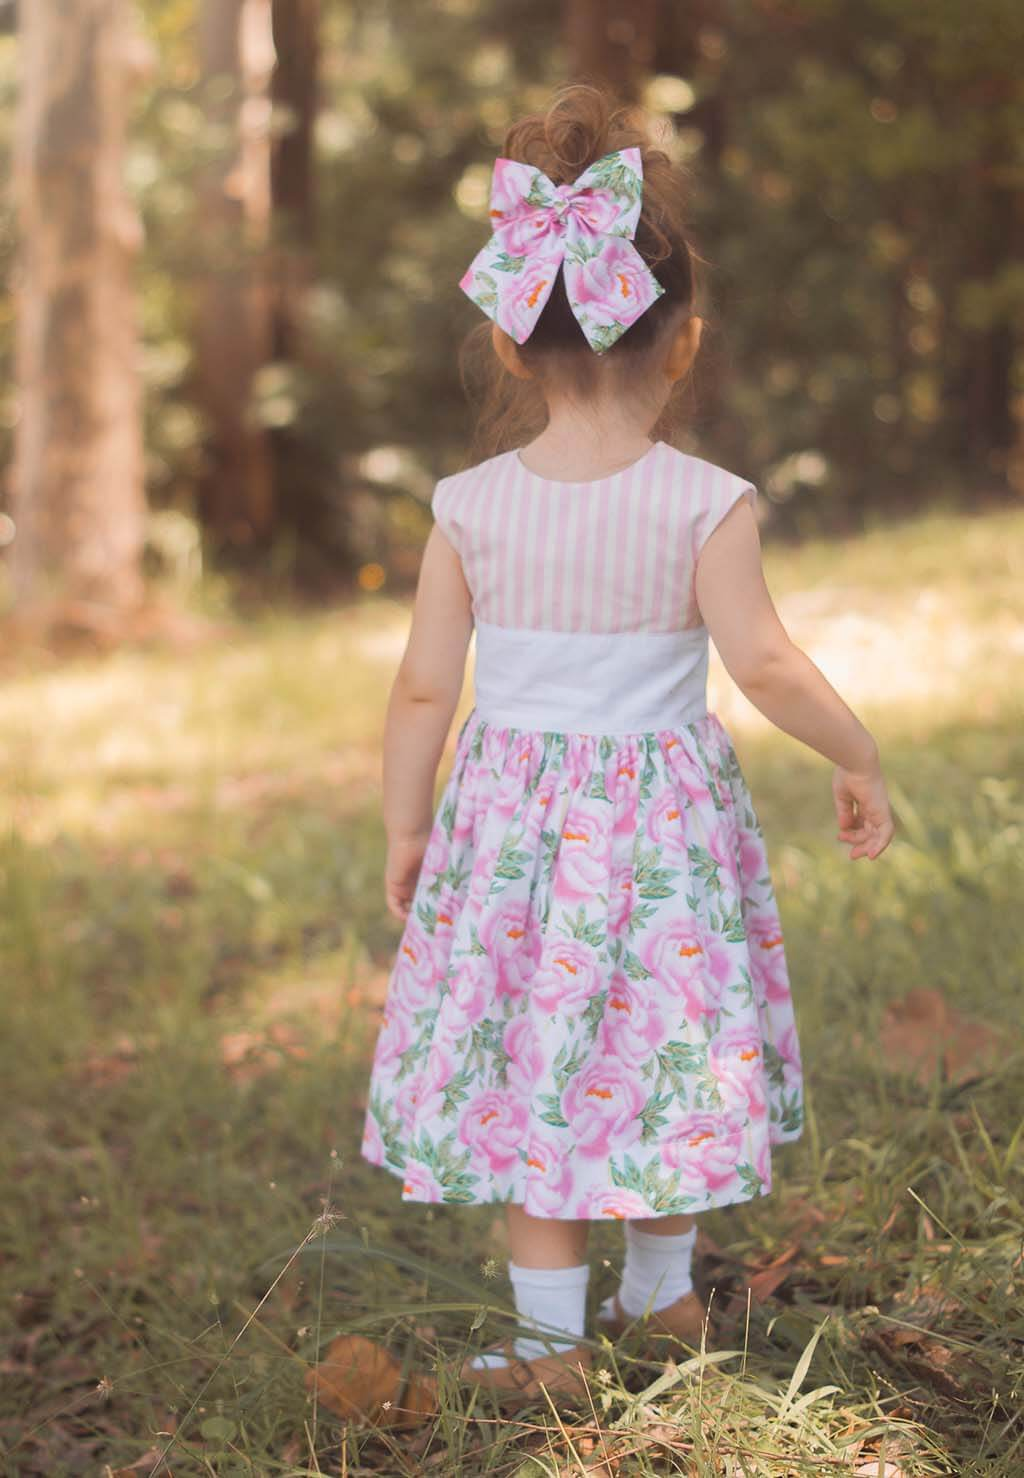 Opal little girls dress with striped top and flowered skirt, matching hair bow